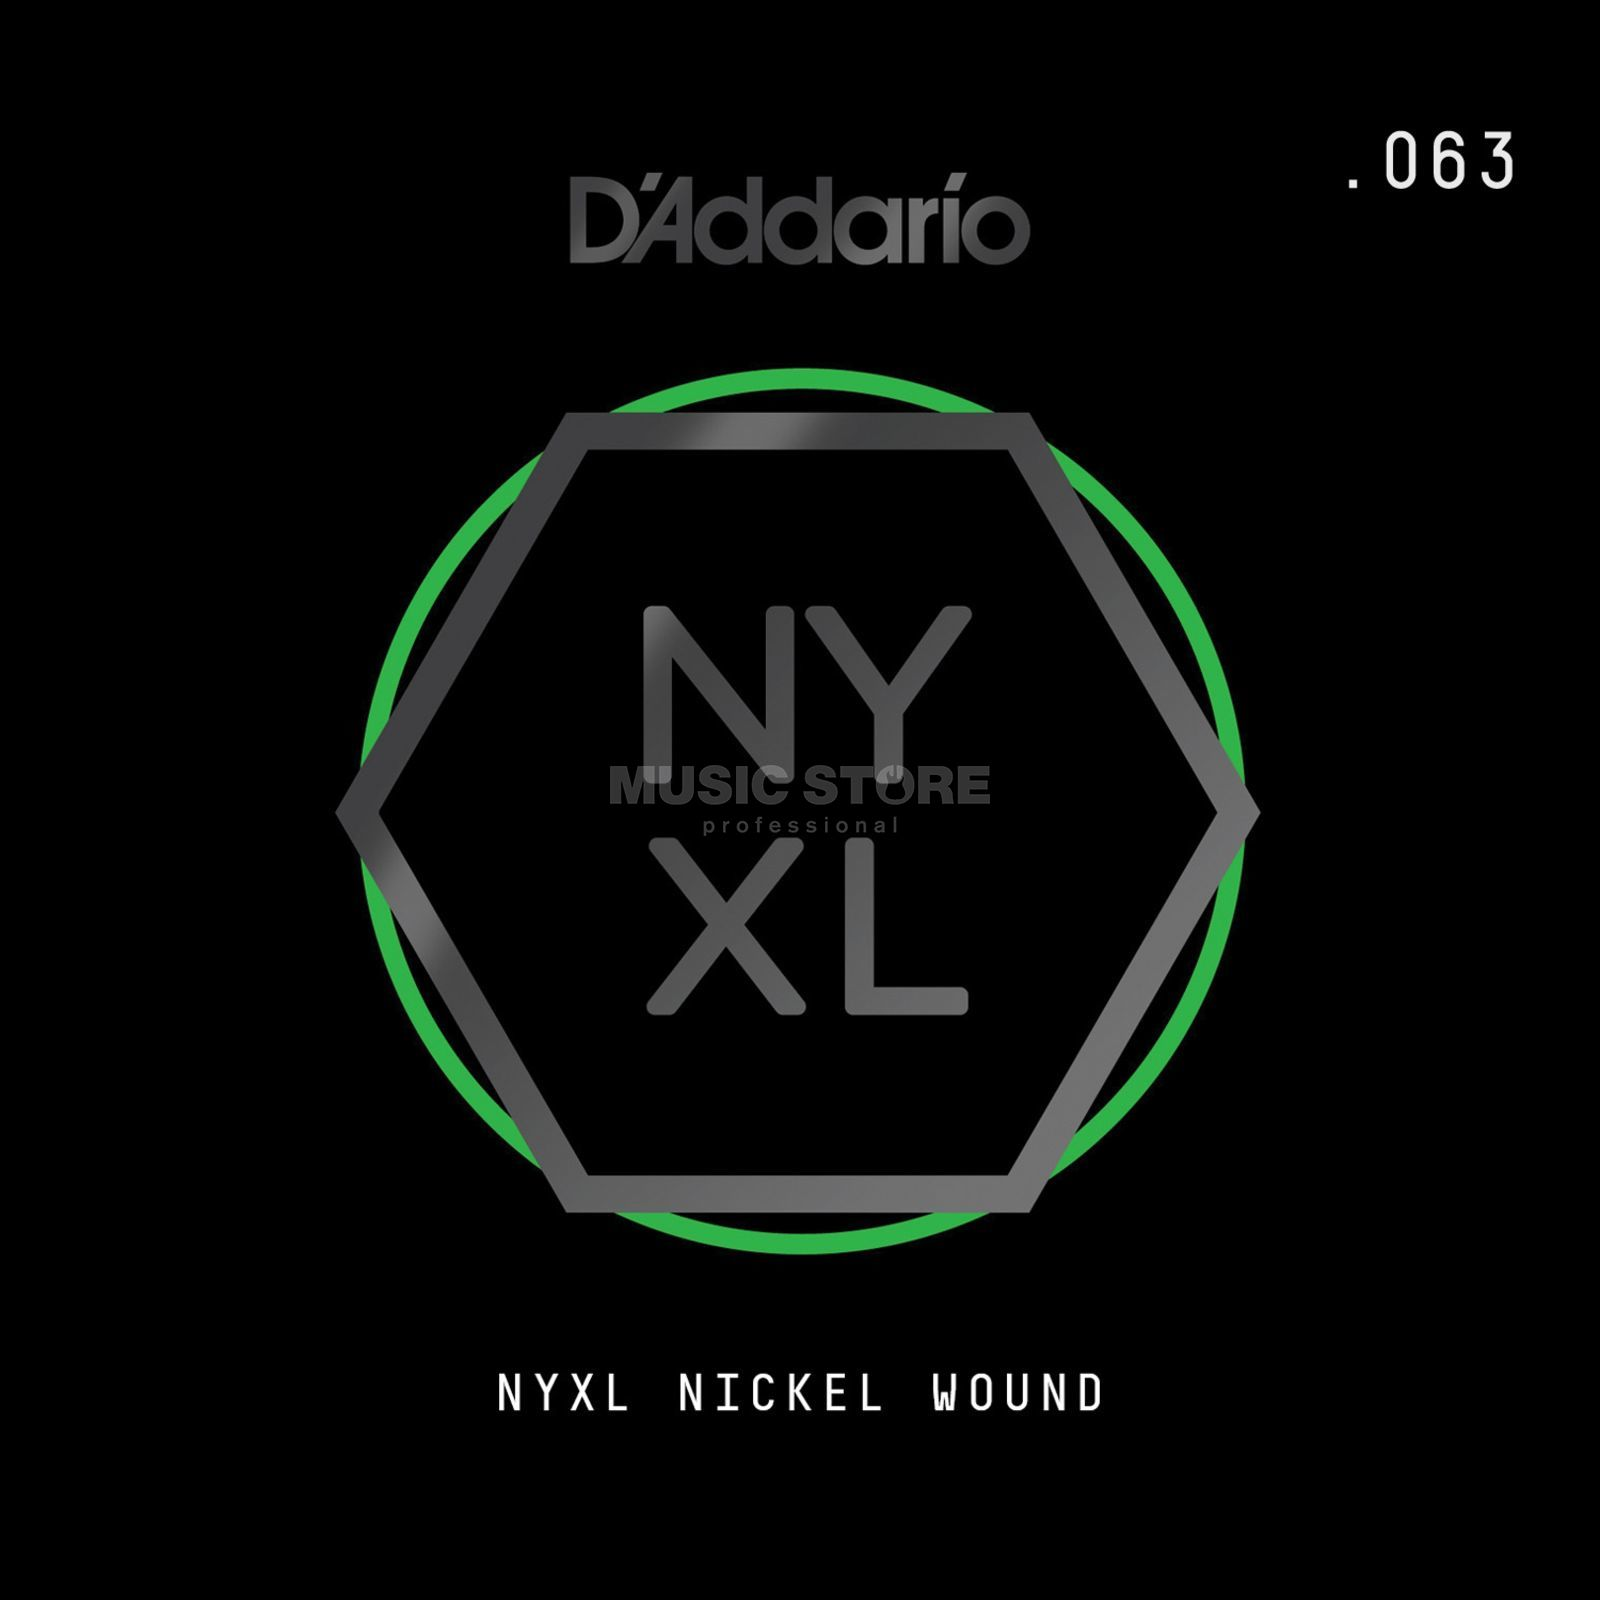 D'Addario NYNW063 Single String Nickel Wound Imagem do produto